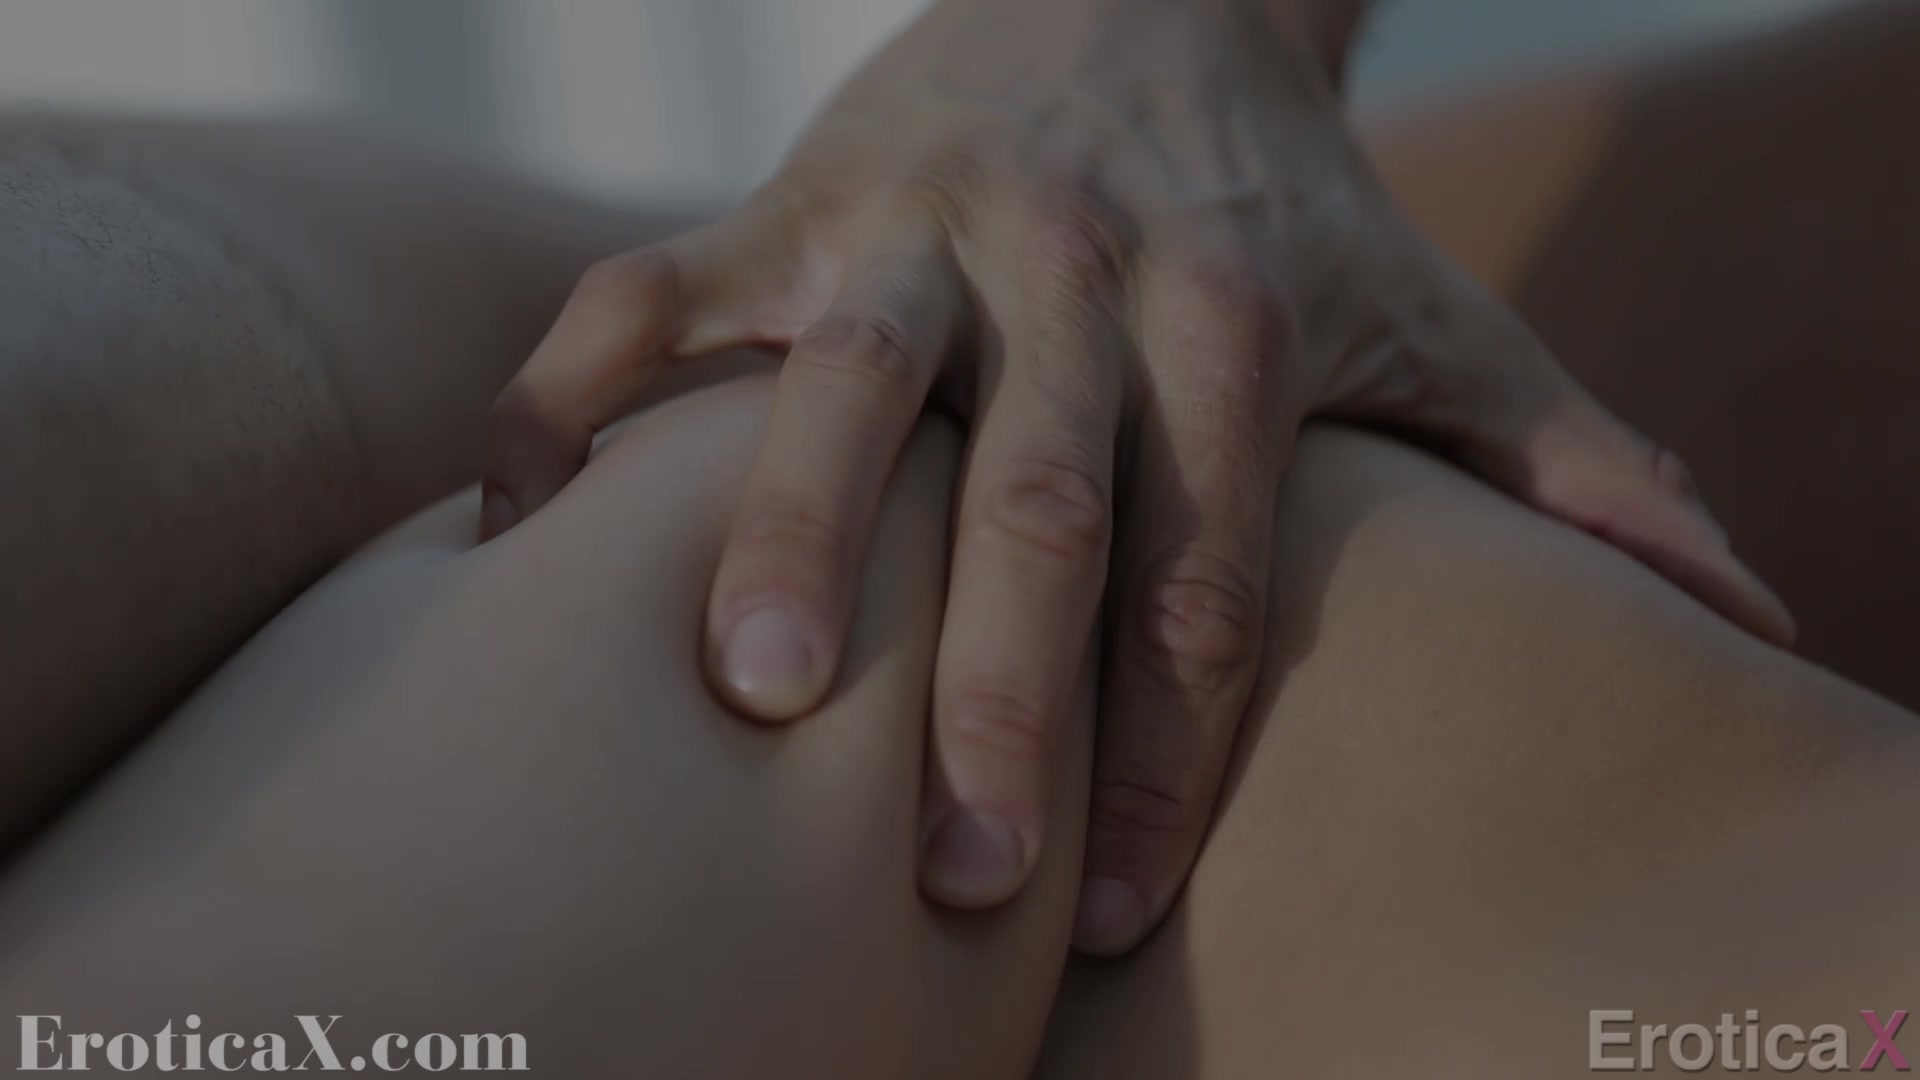 Advise you intimate couple sex videos free links 5740